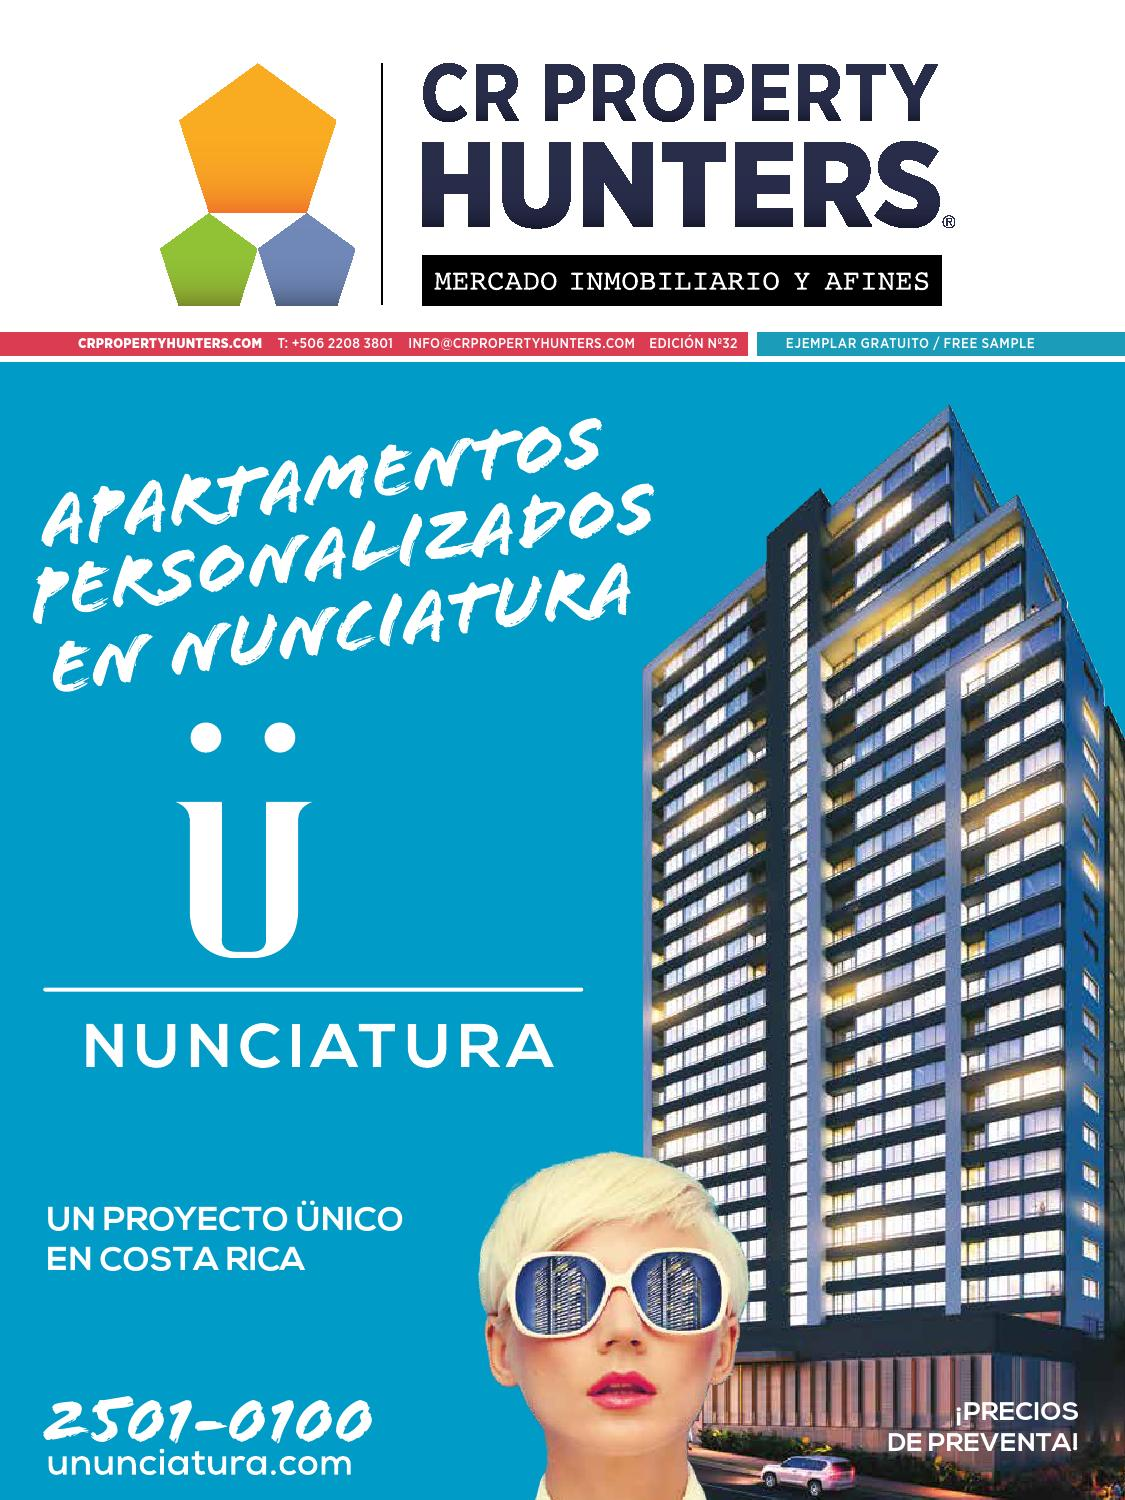 Cr Property Hunters Edici N 32 By Property Hunters Media